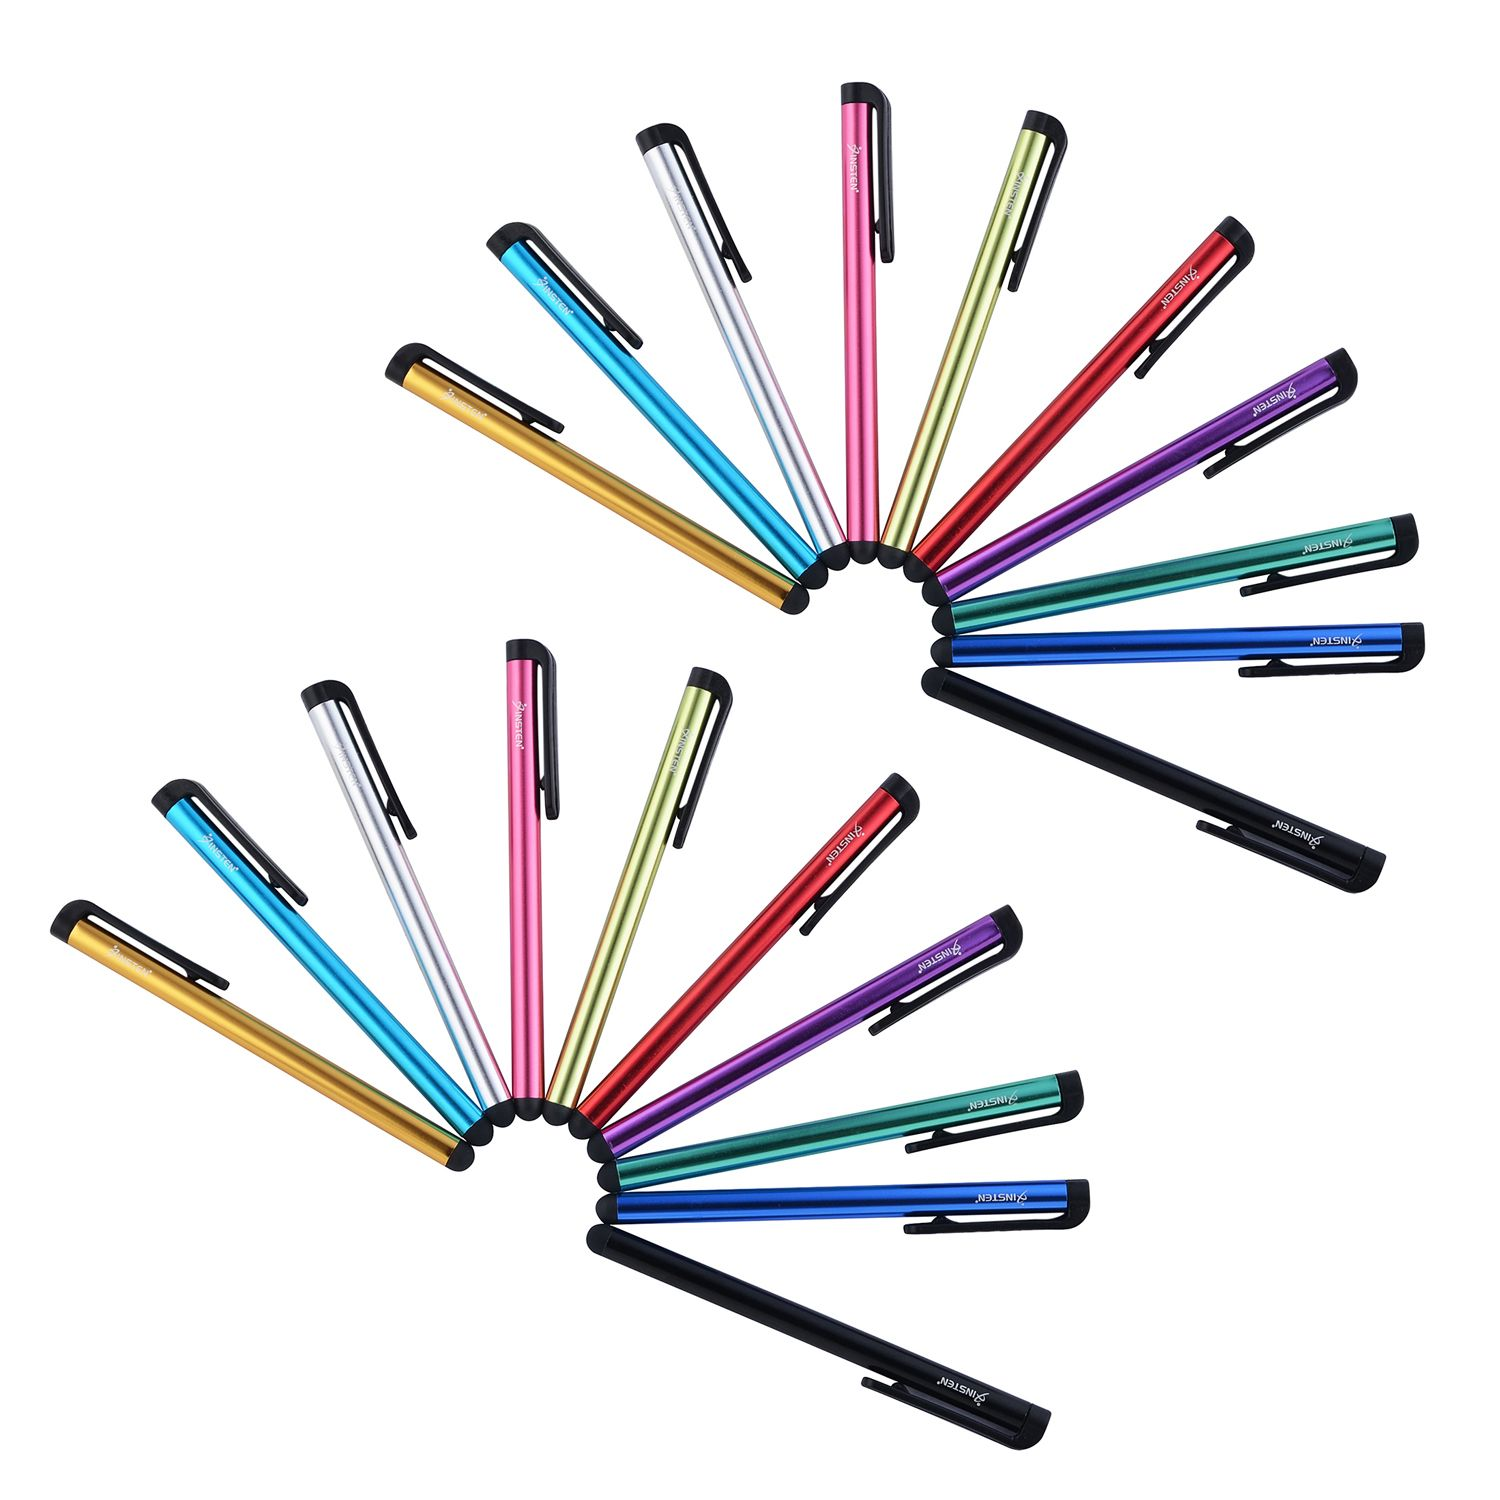 Insten 20pcs Universal Touch Screen Stylus Pen For iPhone 7 8 X XS XS Max iPad Mini Air Pro Samsung Galaxy S9 S8 S7 S6 Edge Tab Pro Tablet LG G Stylo 4 2 K7 G6 Smartphone Touchscreen Device